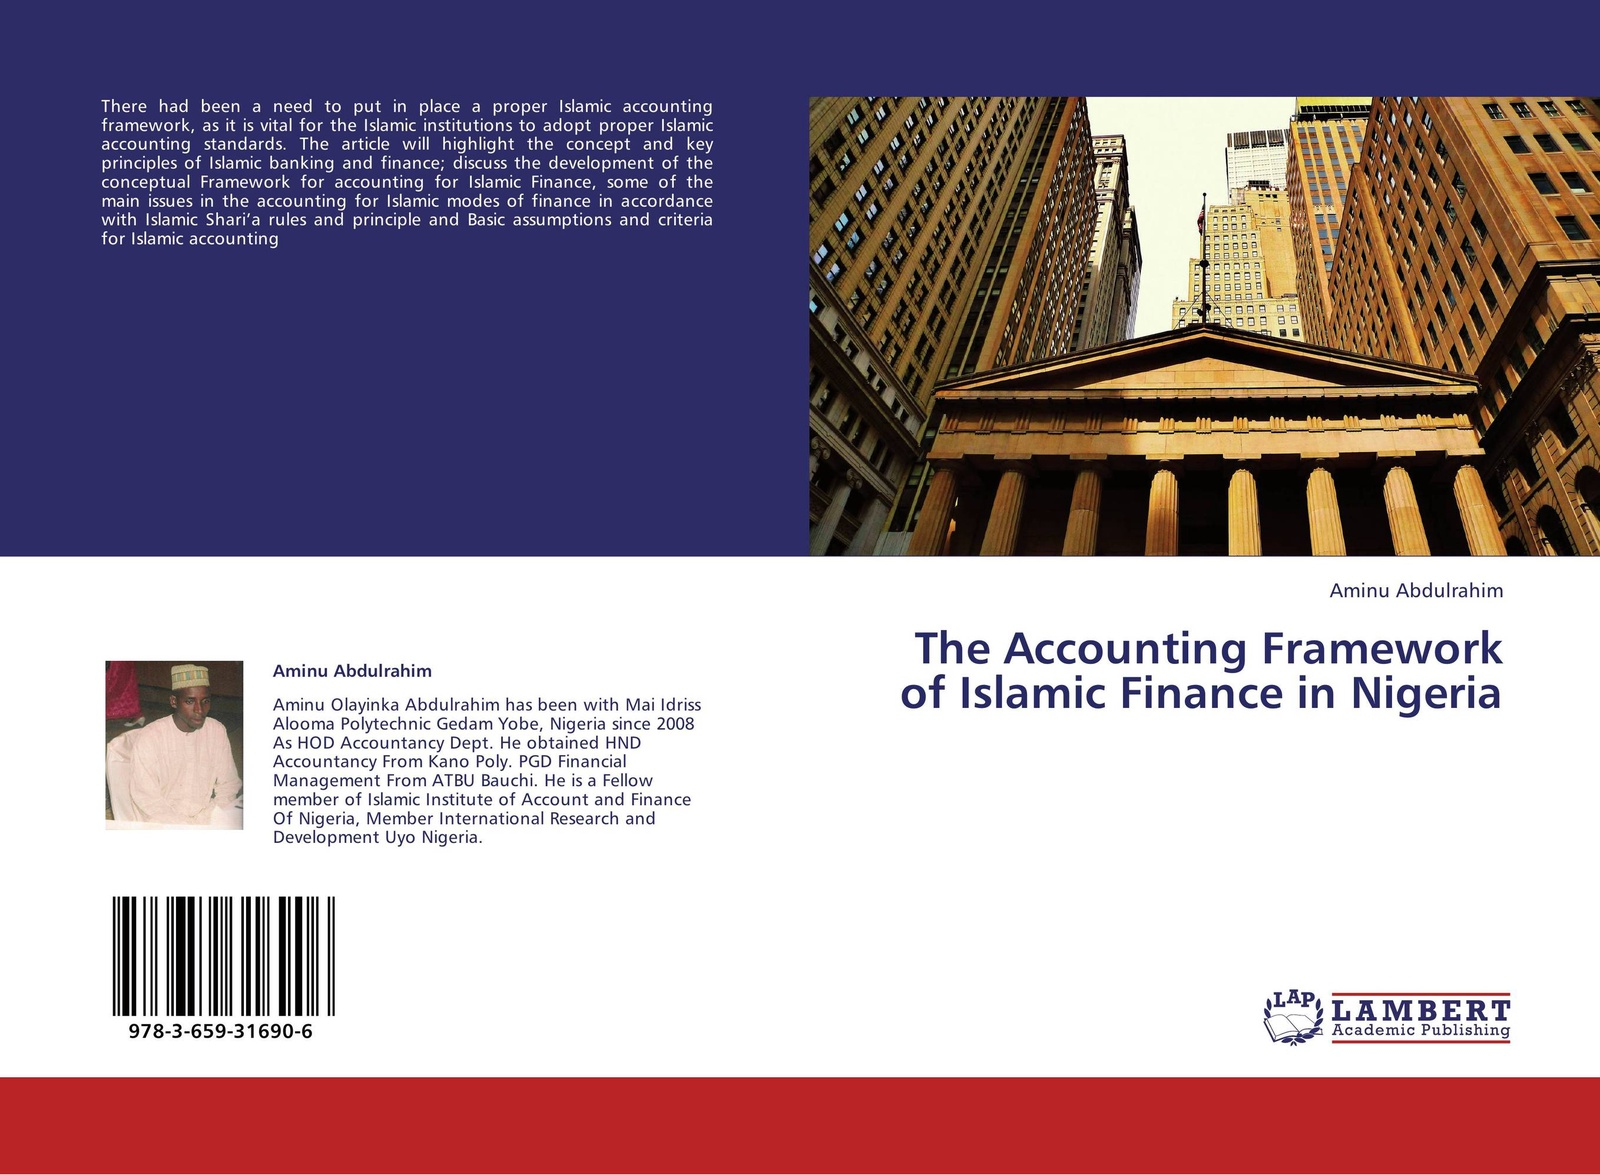 Aminu Abdulrahim The Accounting Framework of Islamic Finance in Nigeria brian kettell frequently asked questions in islamic finance